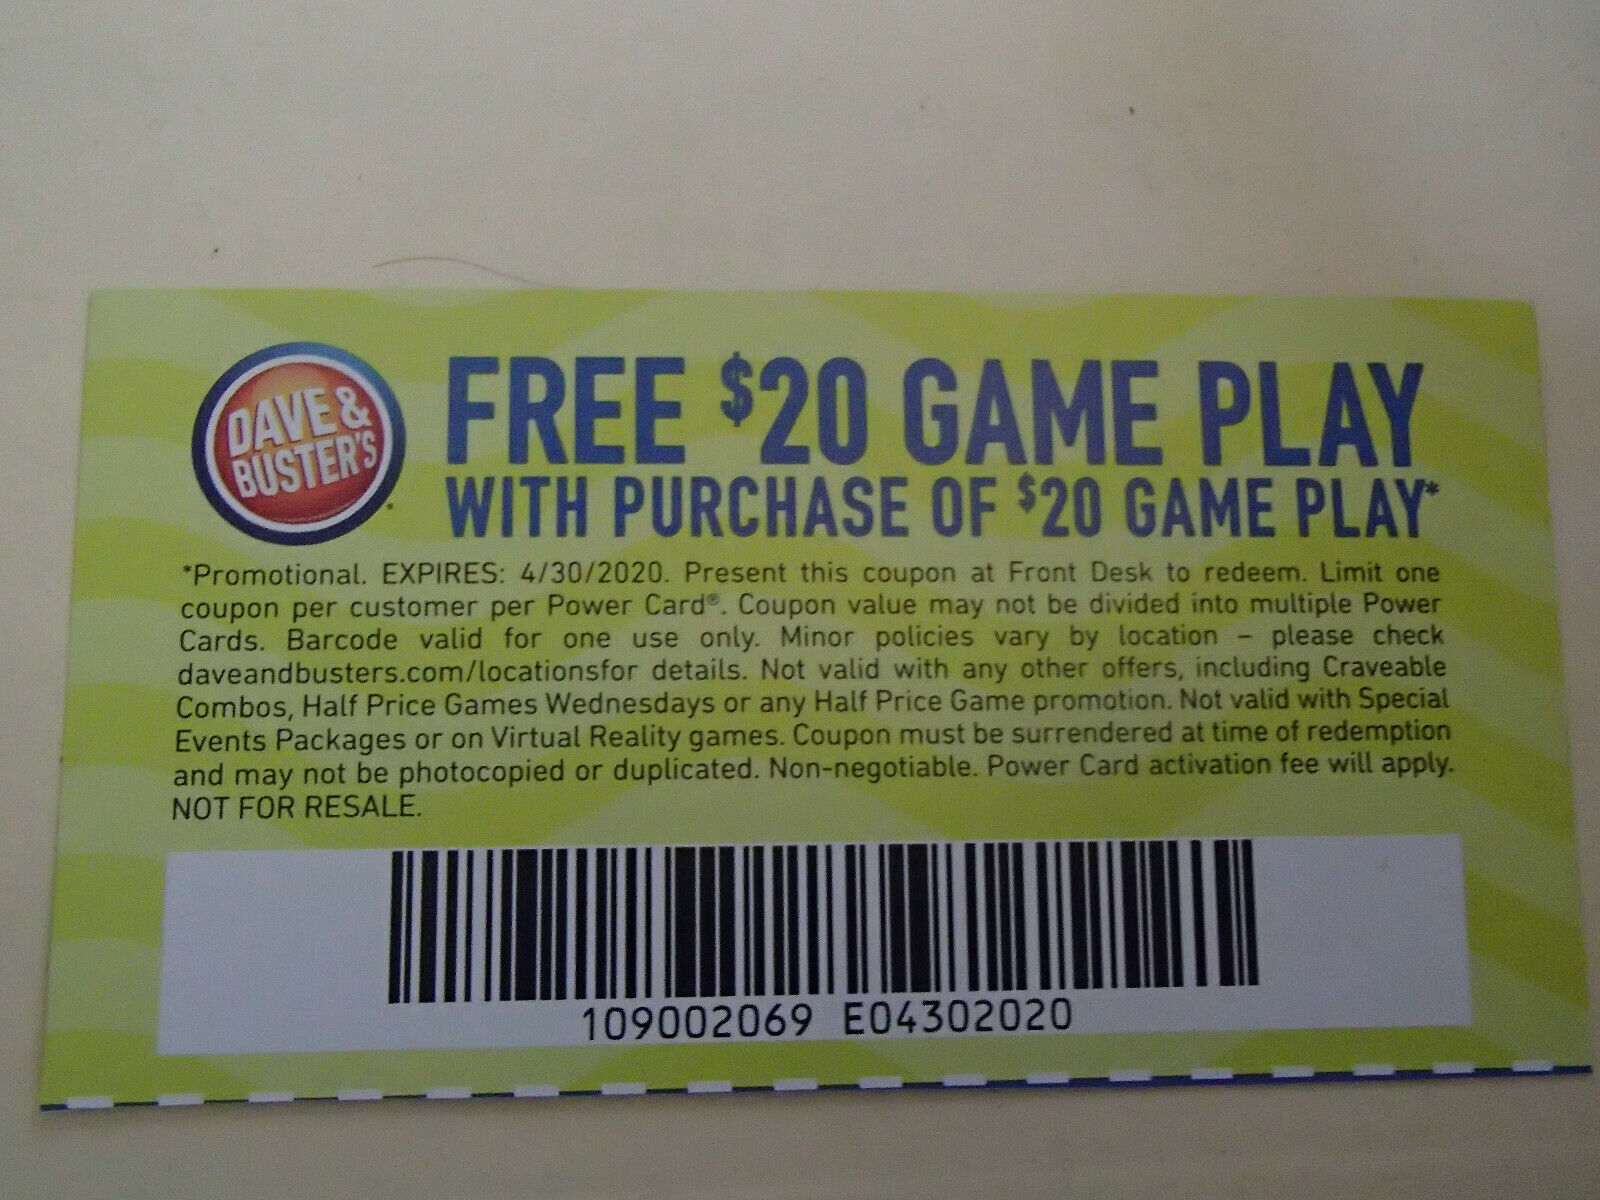 7 Dave And Busters 20 Gameplay With Same Purchase Powercard Expires 04/30/2020 - $4.00